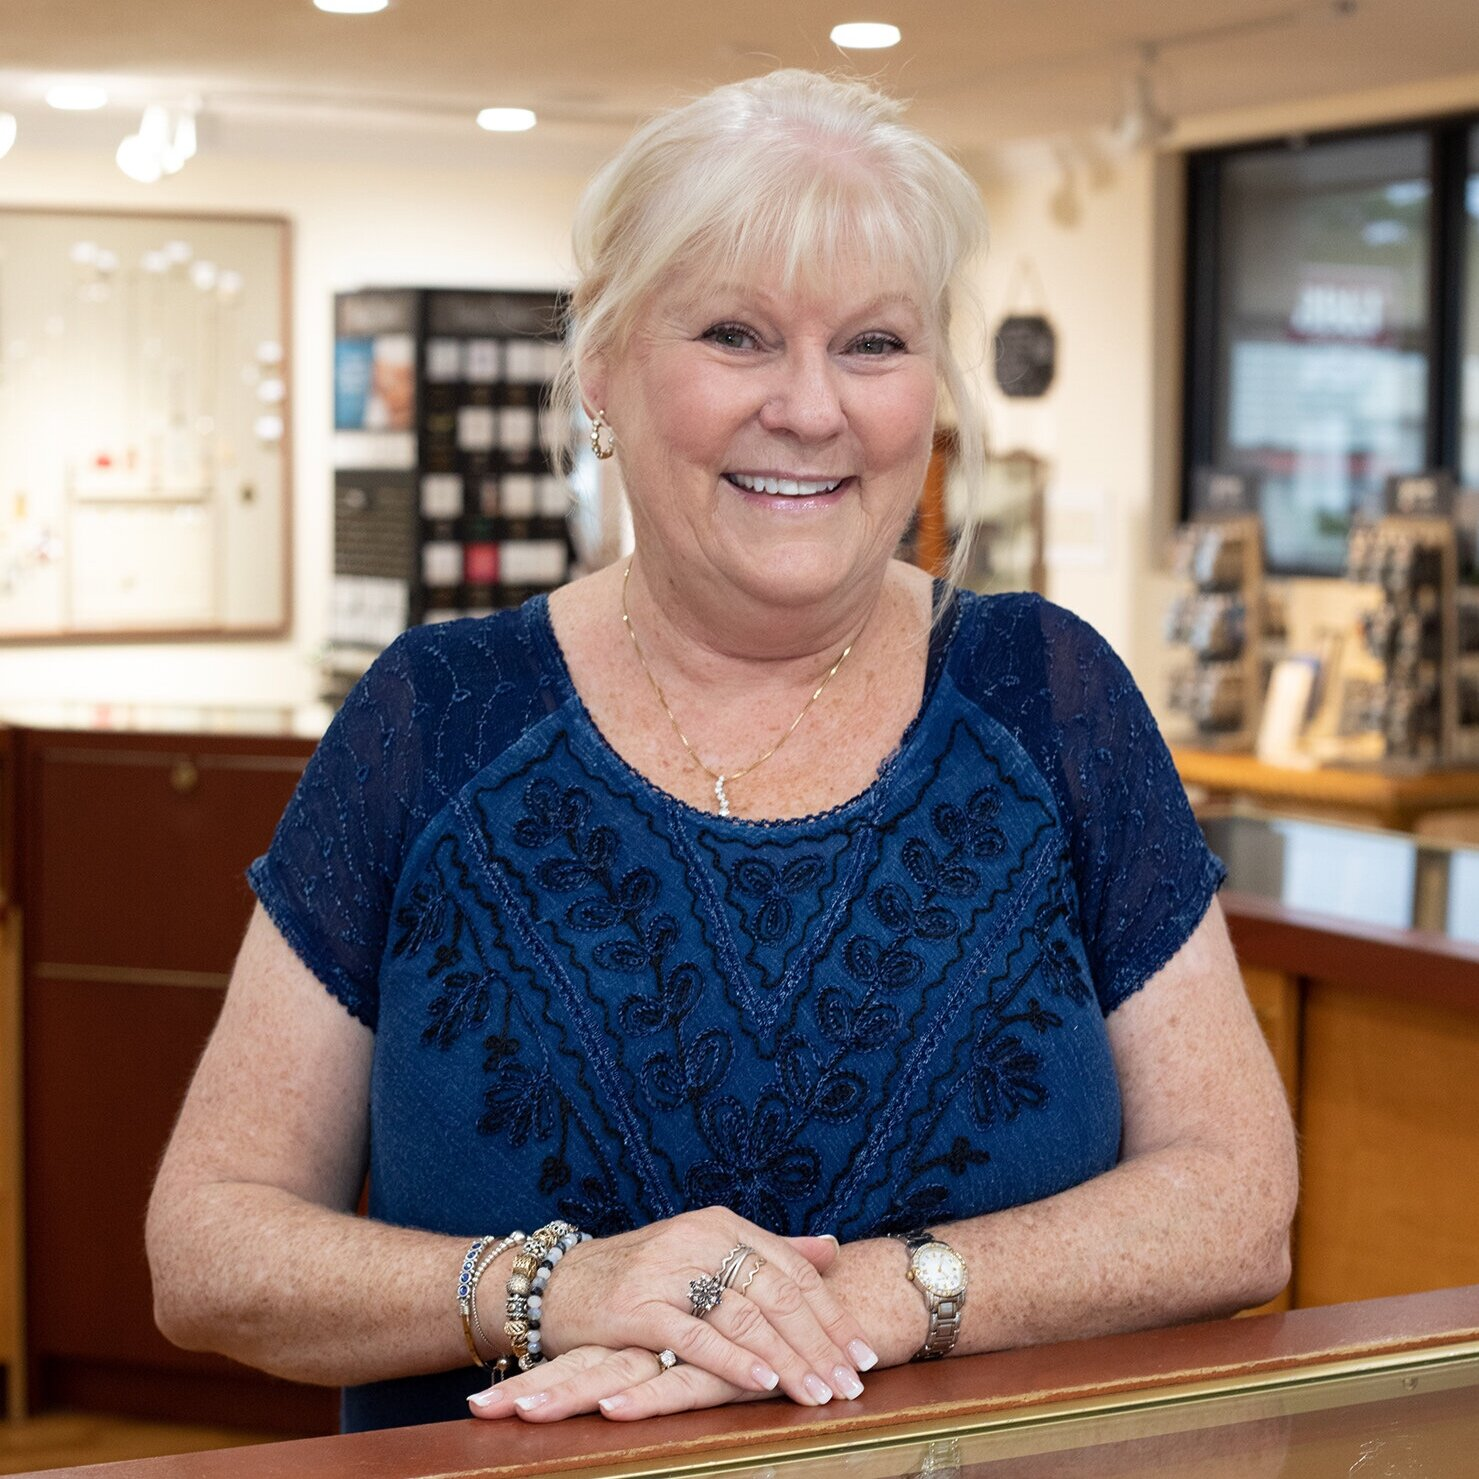 Karen Abernathy Sales Associate   Karen has been in the jewelry industry for over 25 years and with Oz's Jewelers 3 years. She truly loves connecting with her customers and loves the excitement jewelry brings people.  Fun fact: Karen once proposed for a nervous young man to his girlfriend in the jewelry store… and she said yes!  Karen works with us on Saturdays